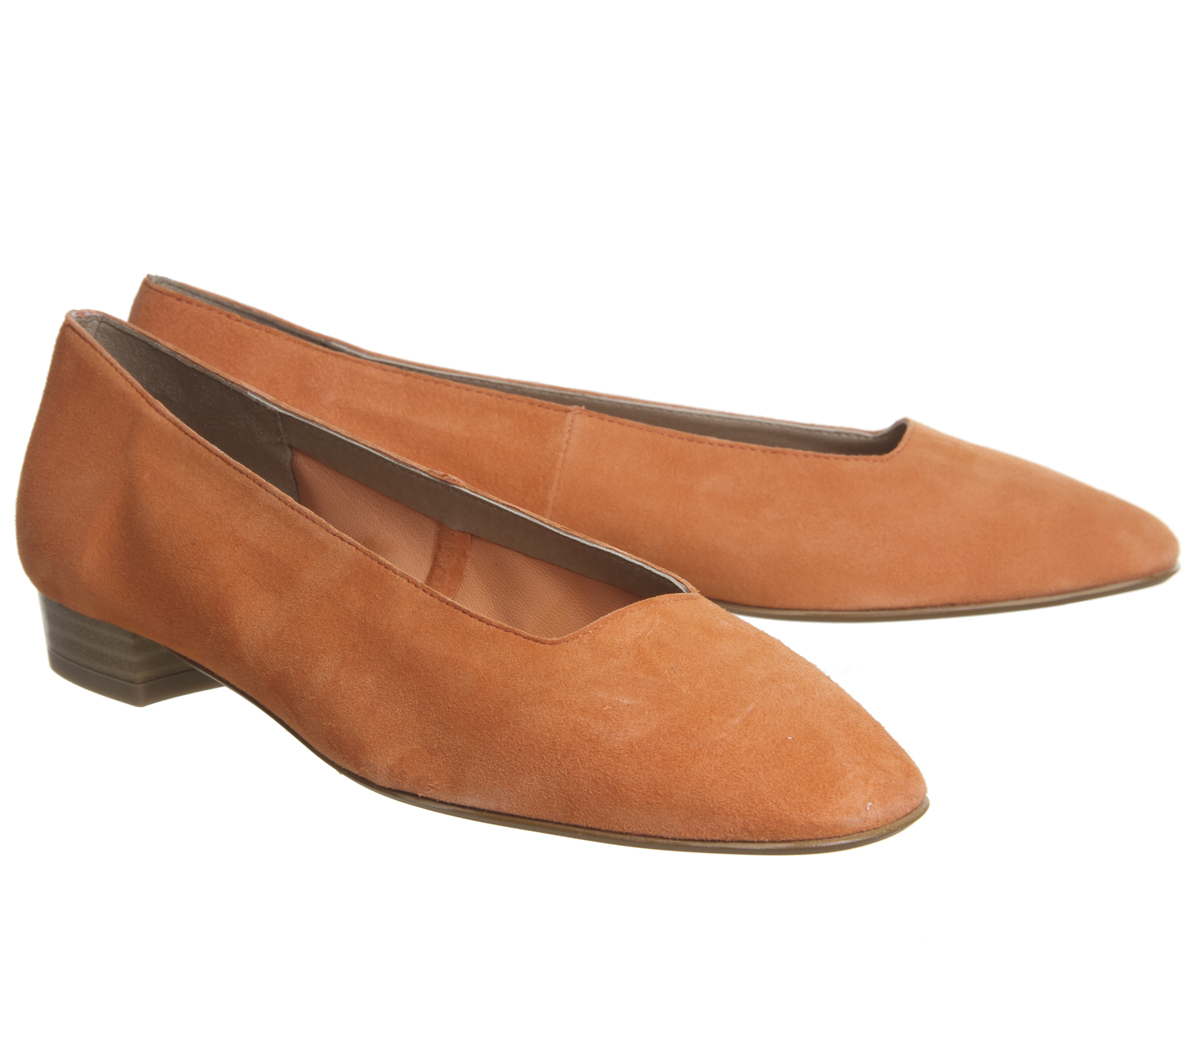 Womens Office Fairy Square Toe Flats Ballet Flats ORANGE SUEDE Flats Toe 6ef80a